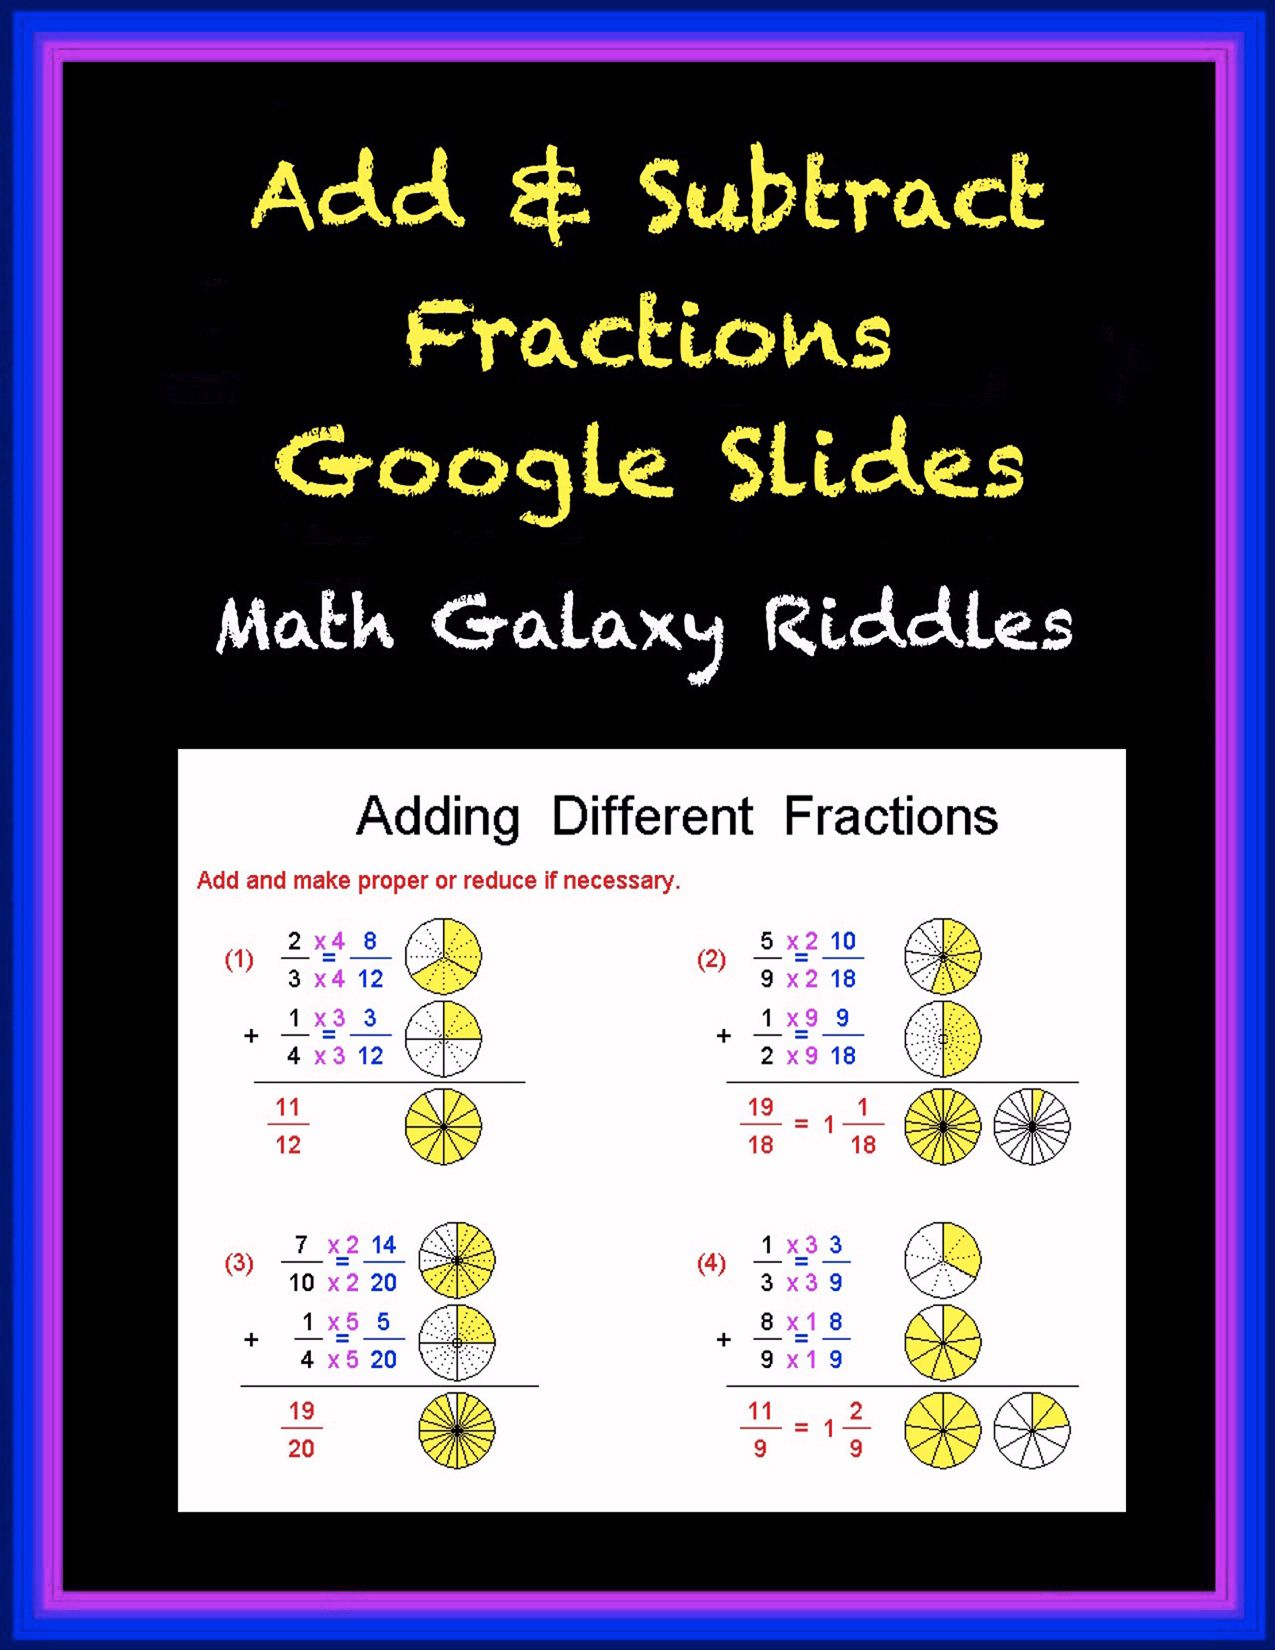 Add Subtract Fractions Google Slides Math Galaxy Distance Learning Add And Subtract Fractions Math Riddles Google Classroom Math Adding and subtracting like fractions